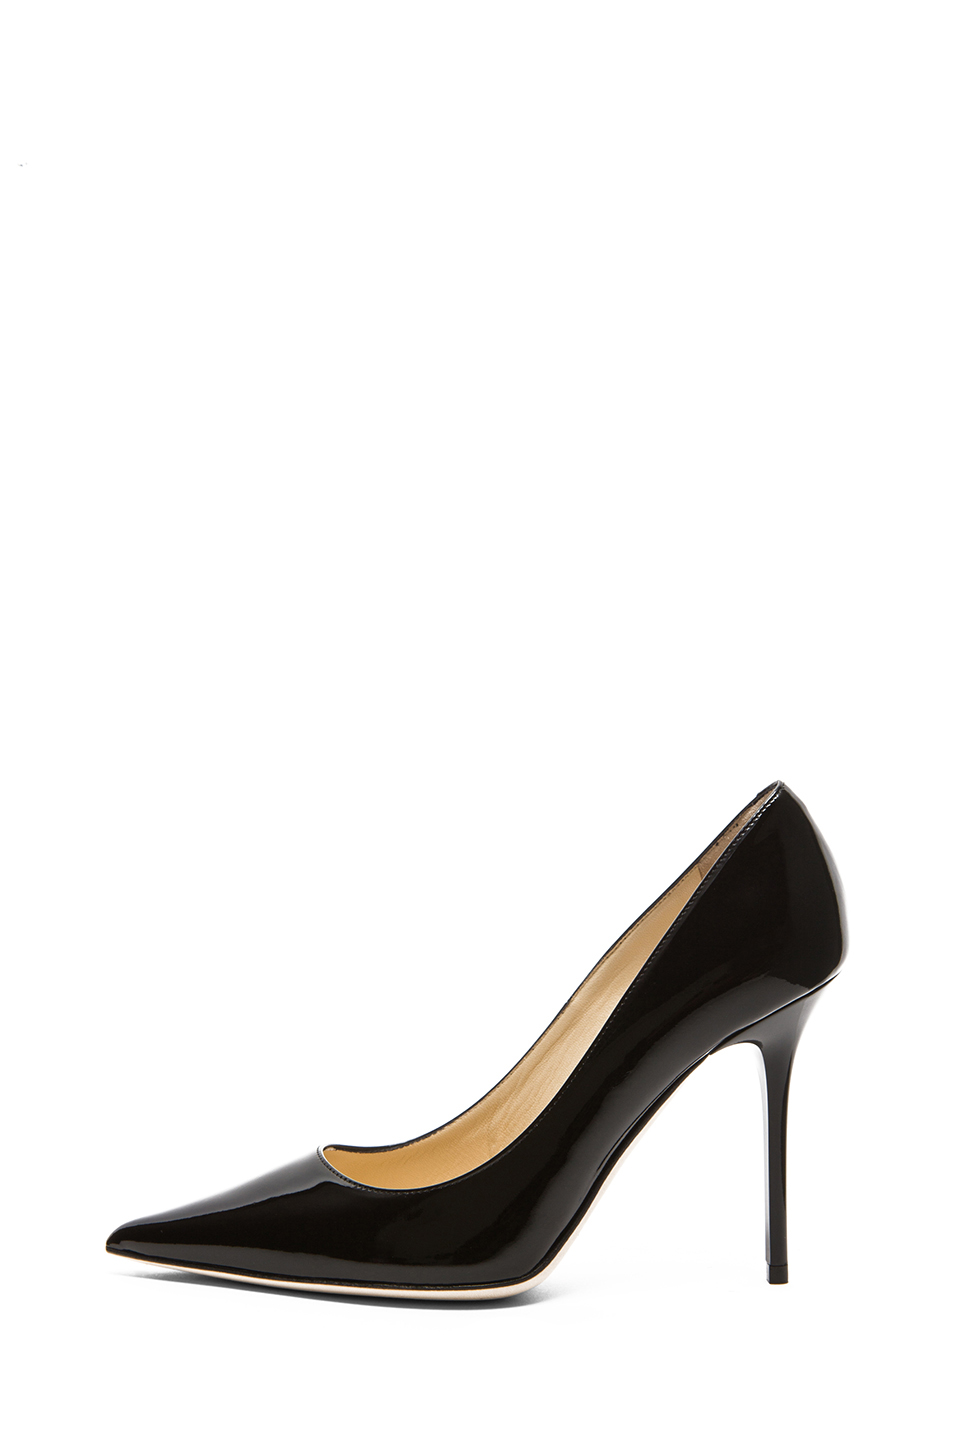 Jimmy Choo|Abel Patent Leather Pump in Black